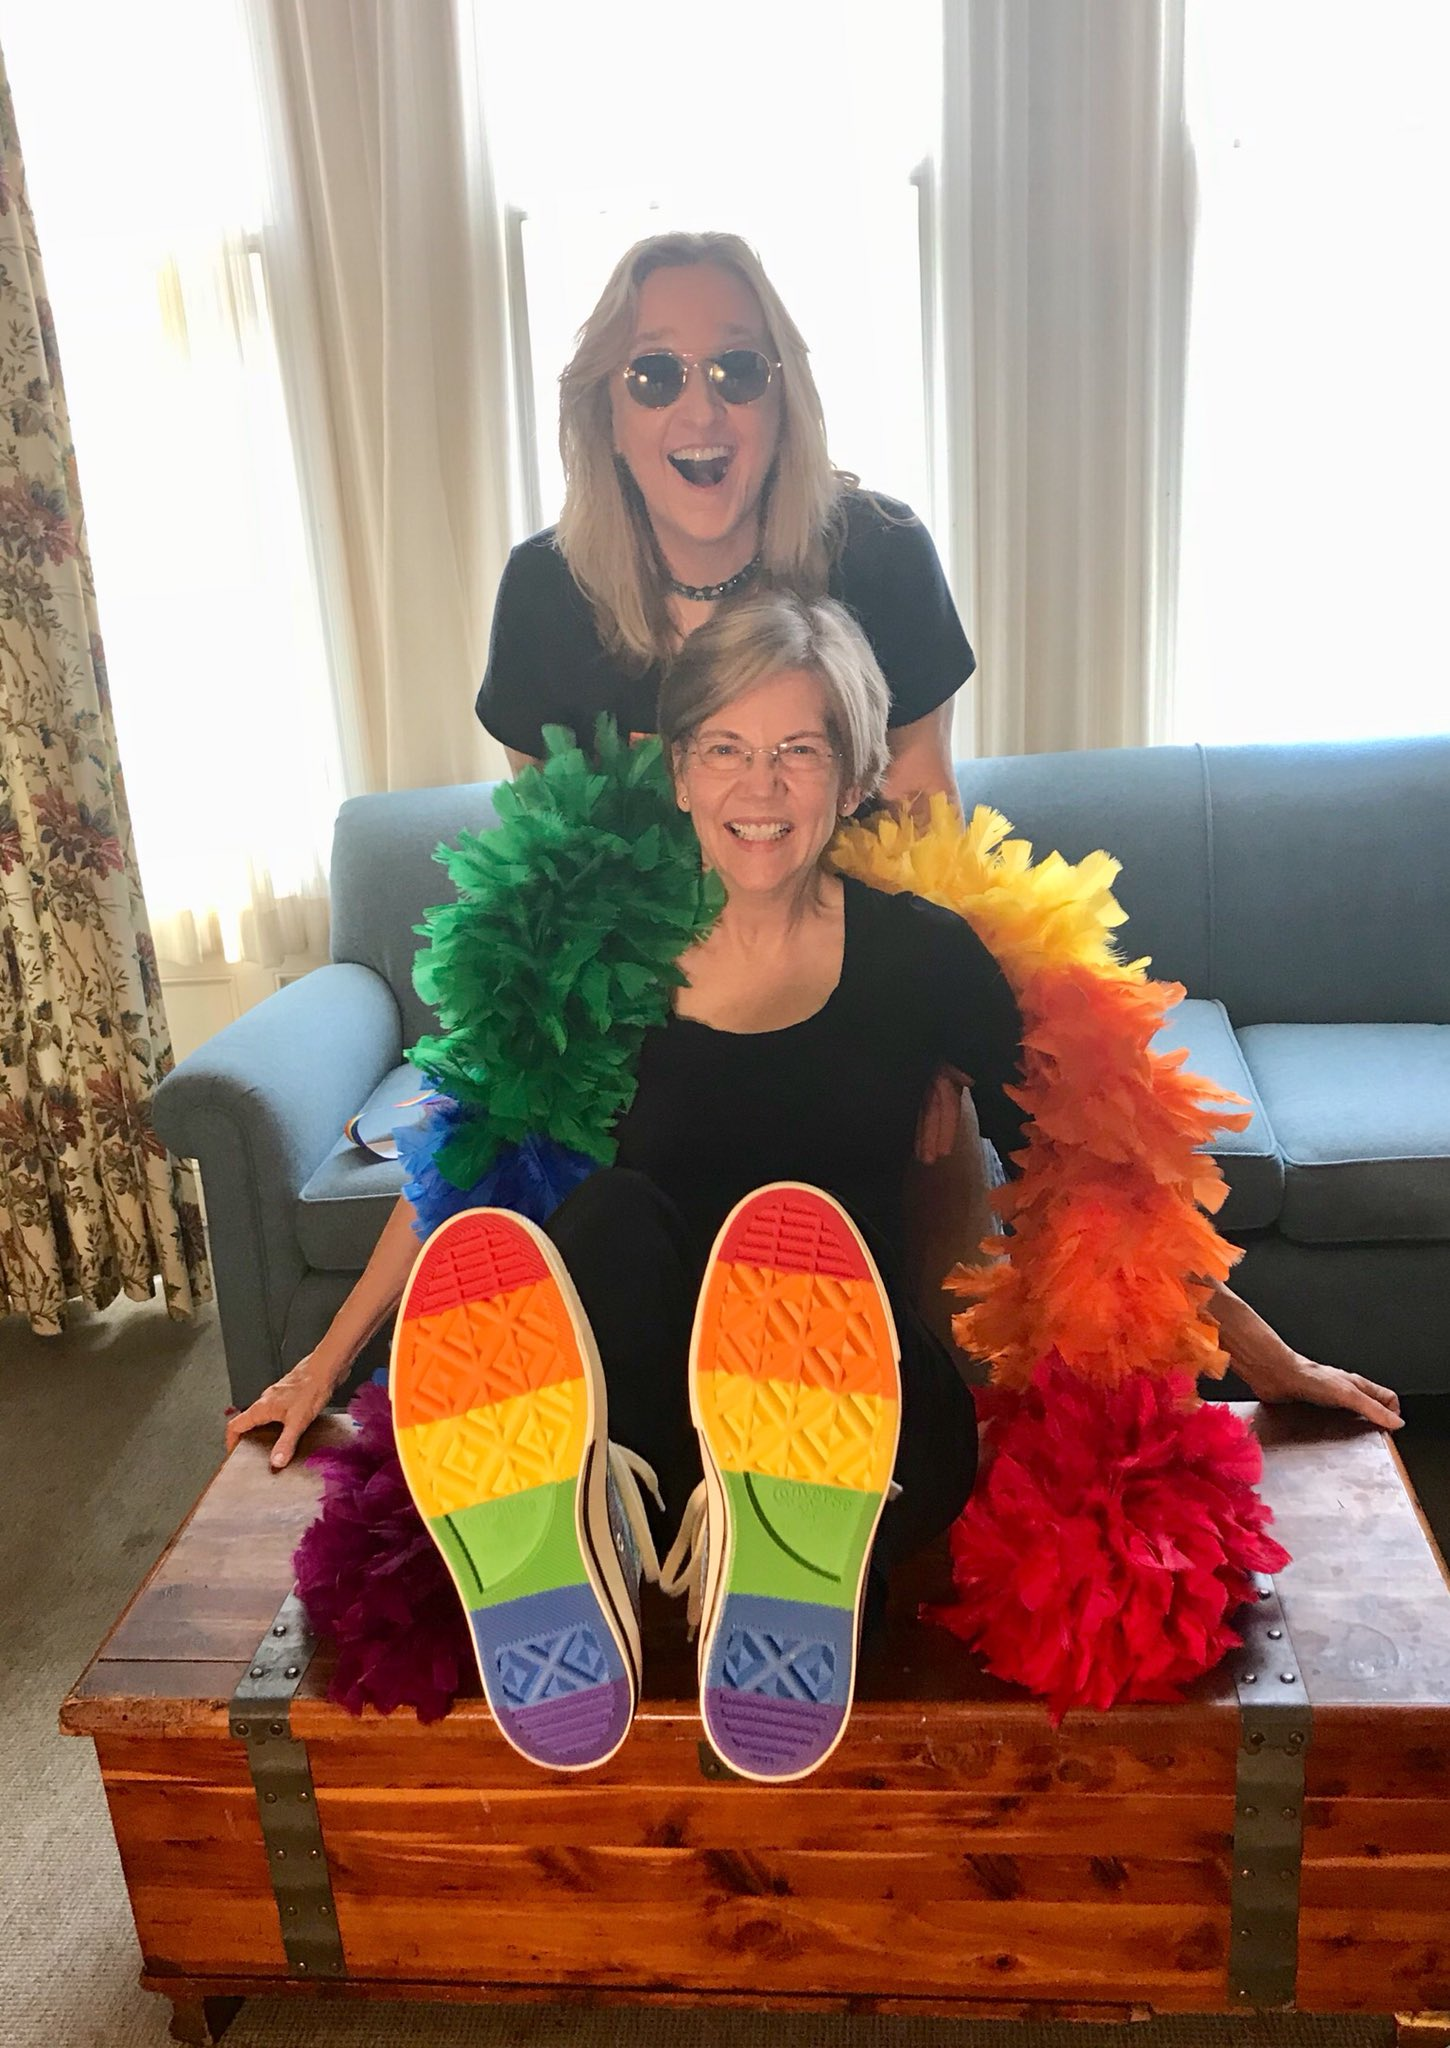 Get ready, #BostonPride – @metheridge and I are ready to dance! #RainbowResistance #Pride2018 https://t.co/qnucmd11qf